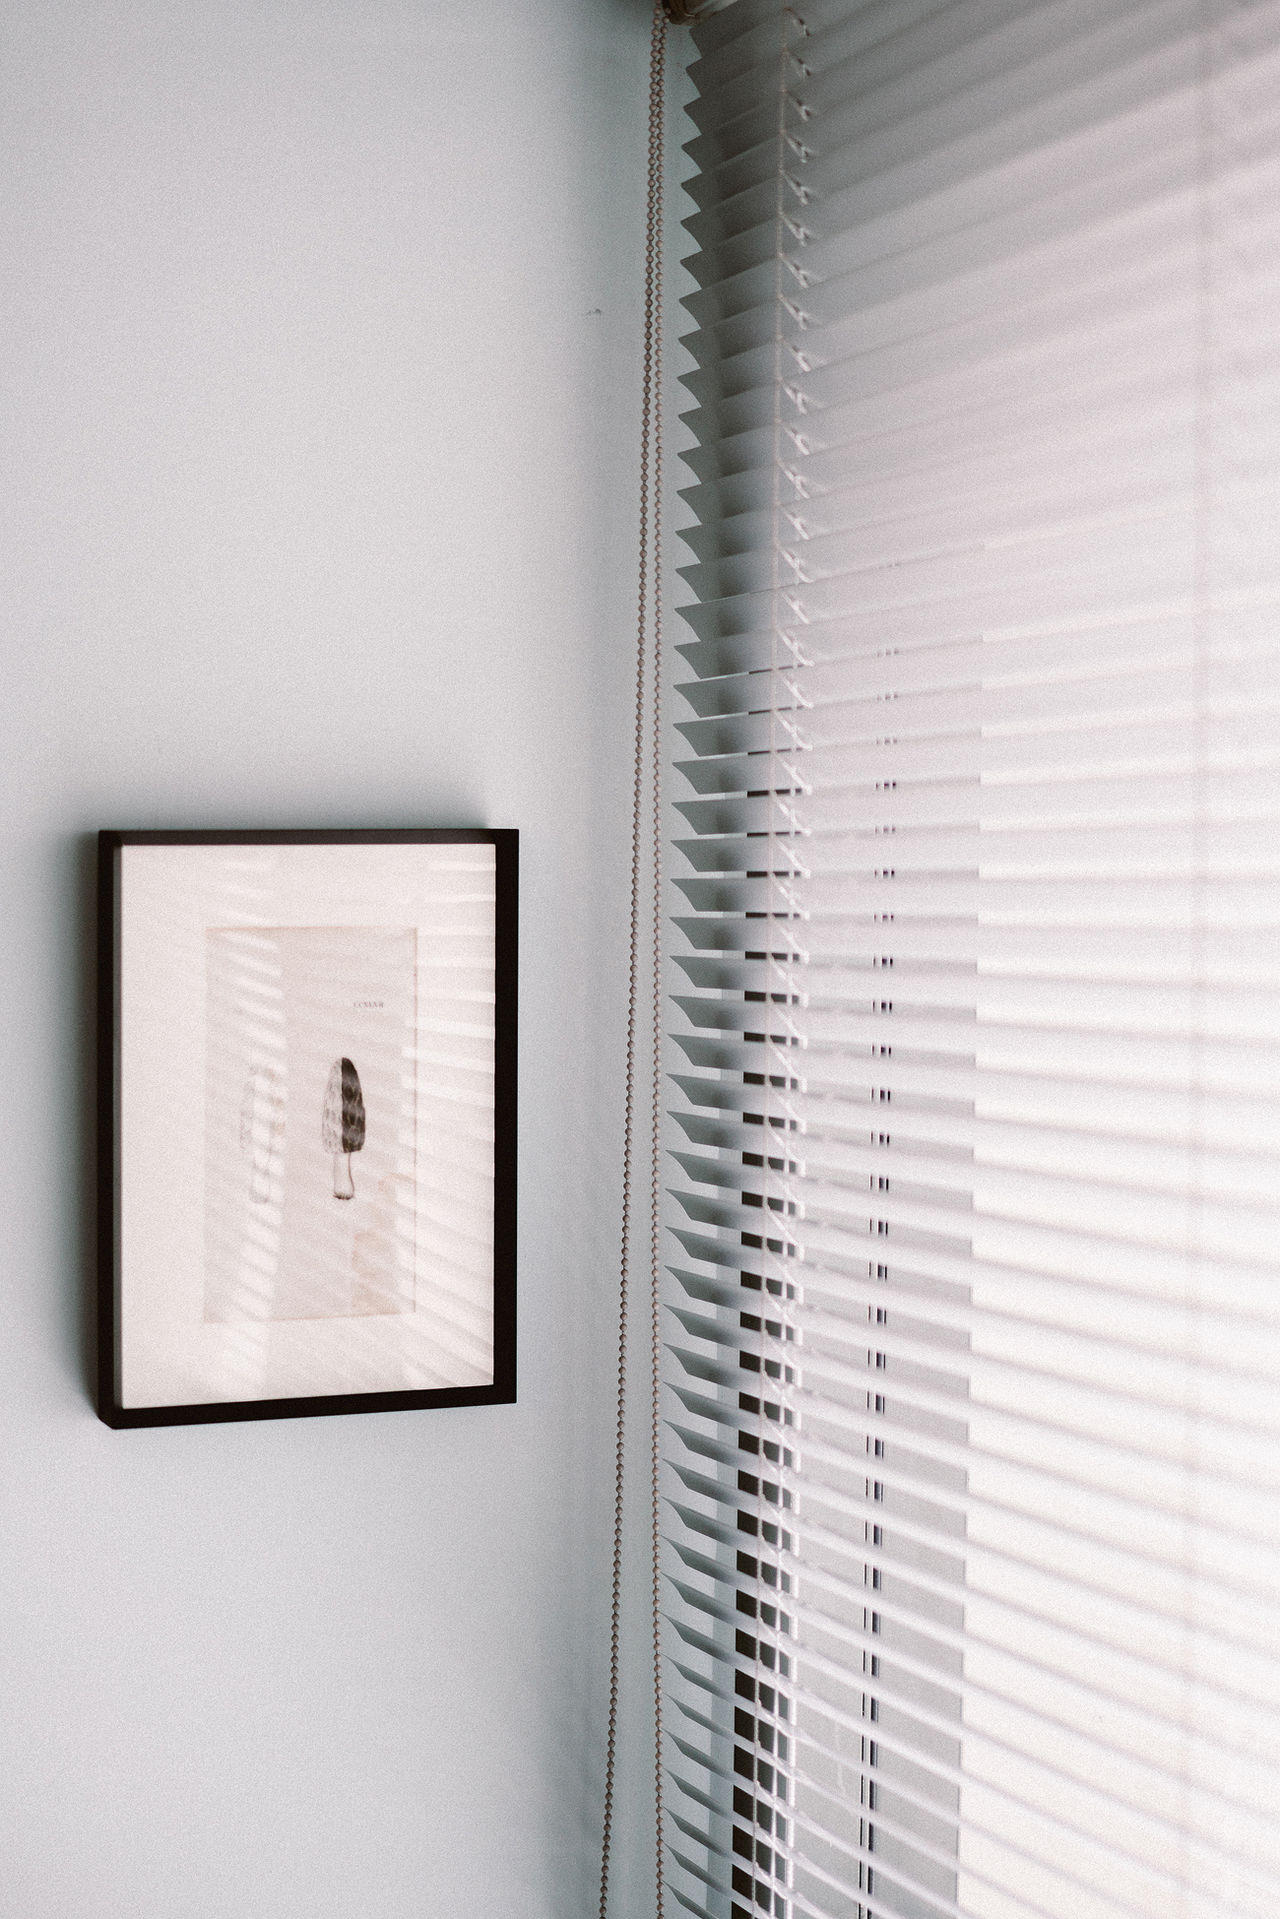 Architecture Blinds Day Home Interior Indoors  No People Window